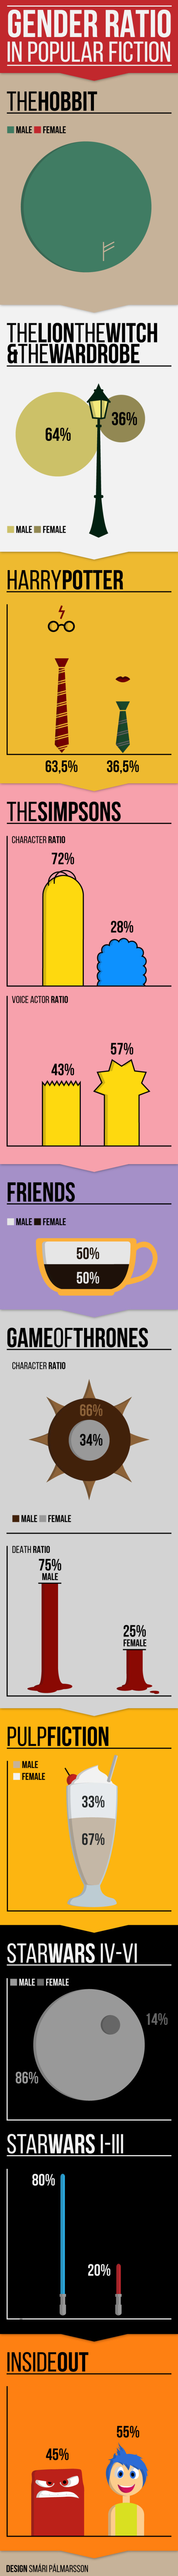 Gender ratio in popular fiction #infographic